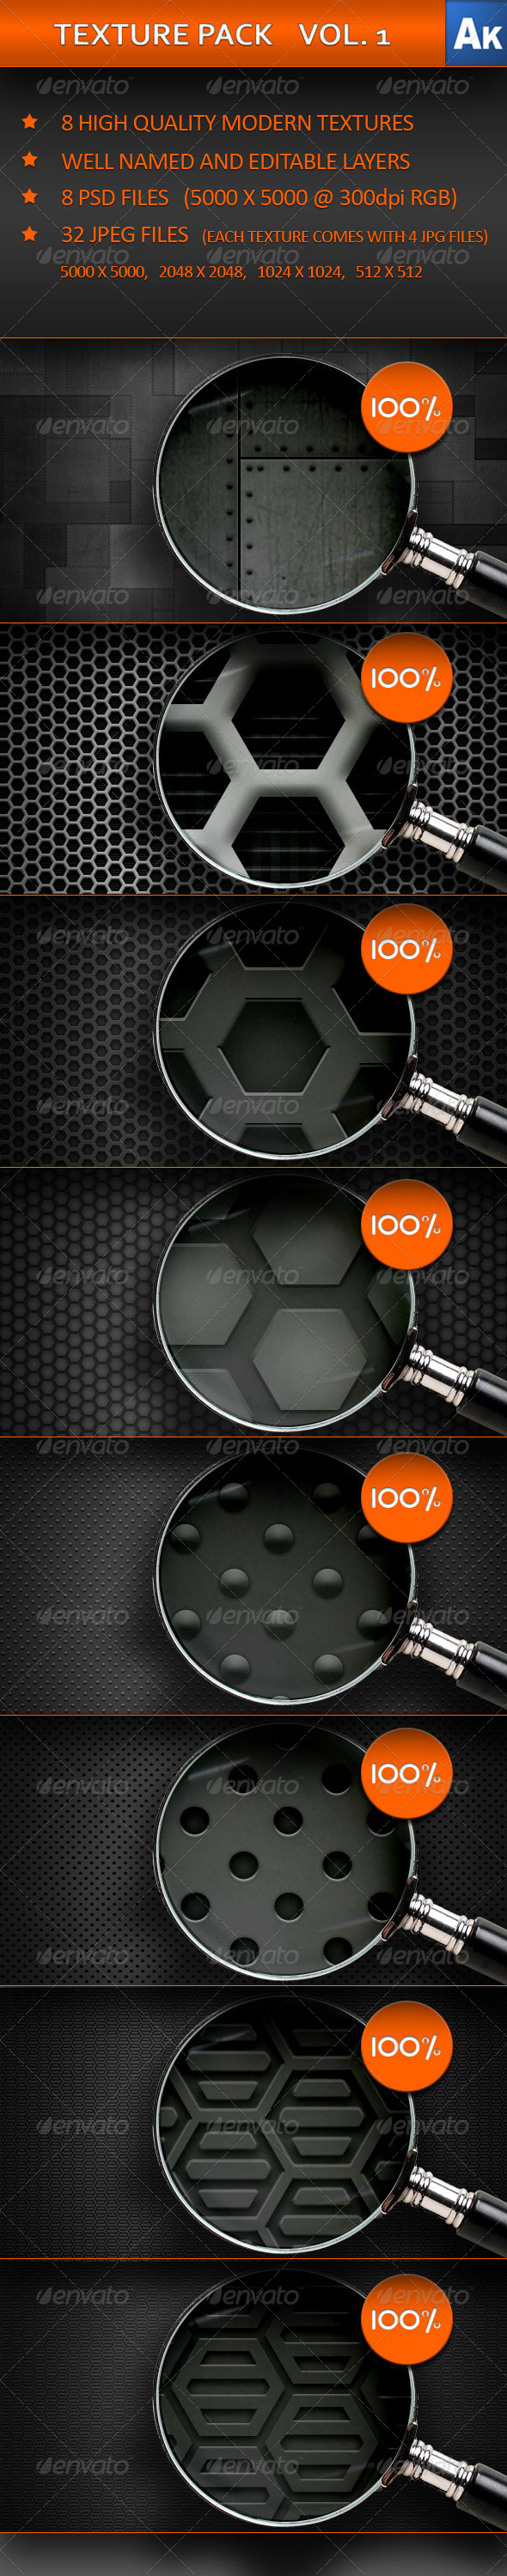 GraphicRiver TEXTURE PACK VOL 1 239390